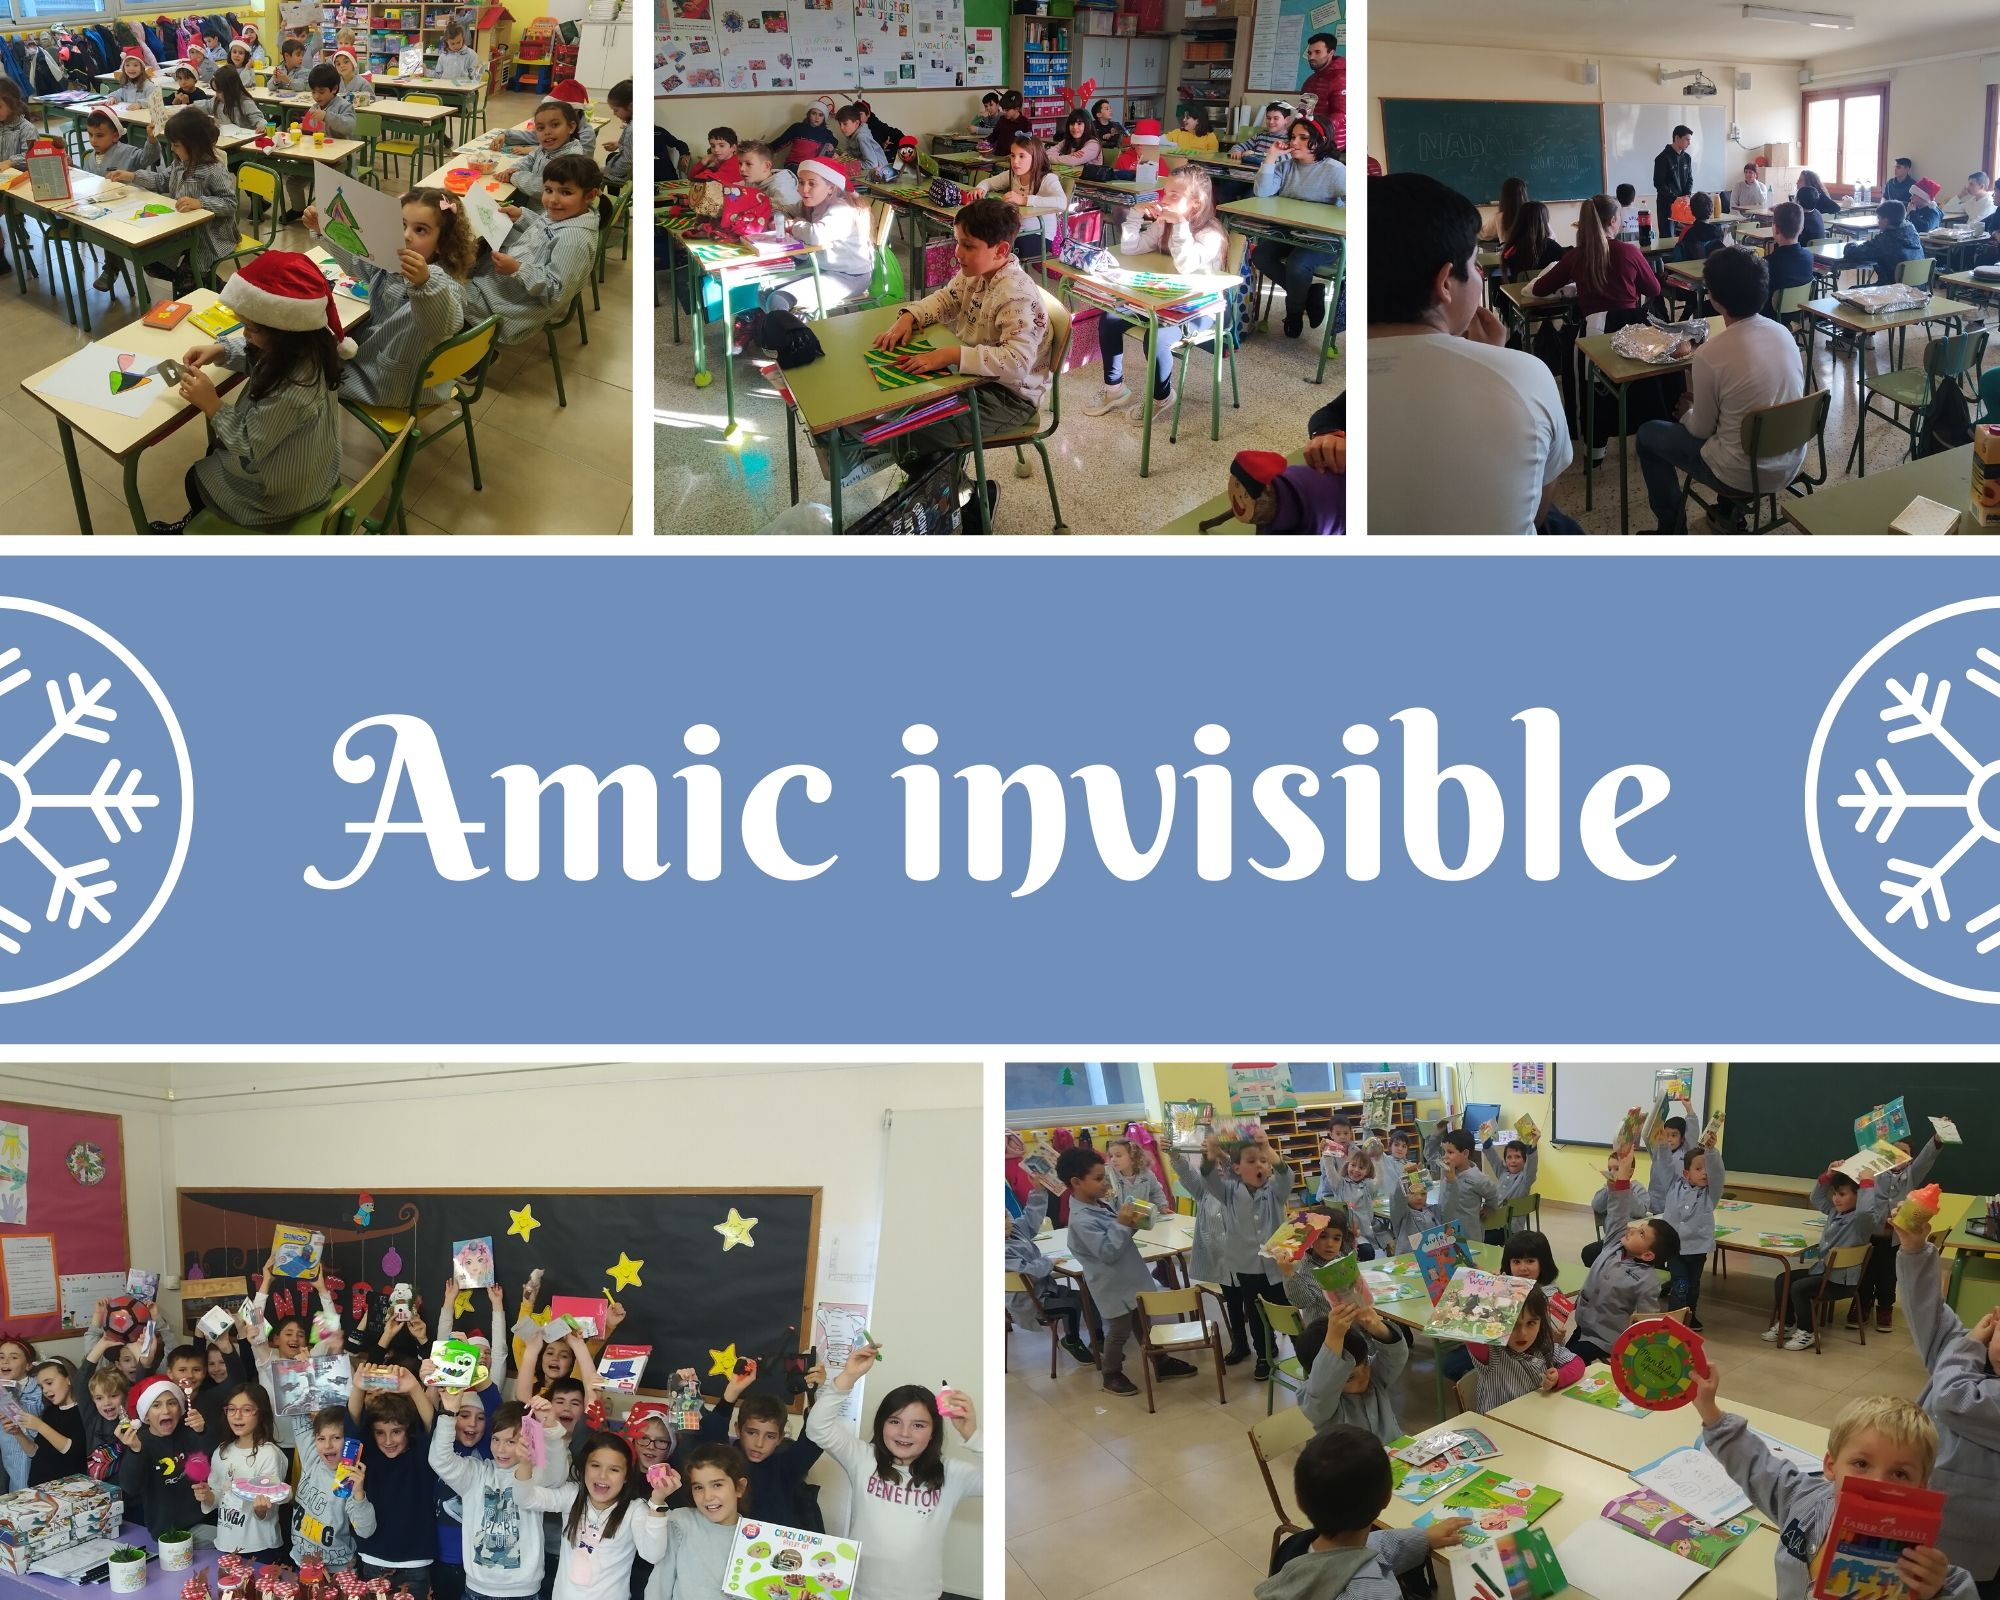 Amic invisible